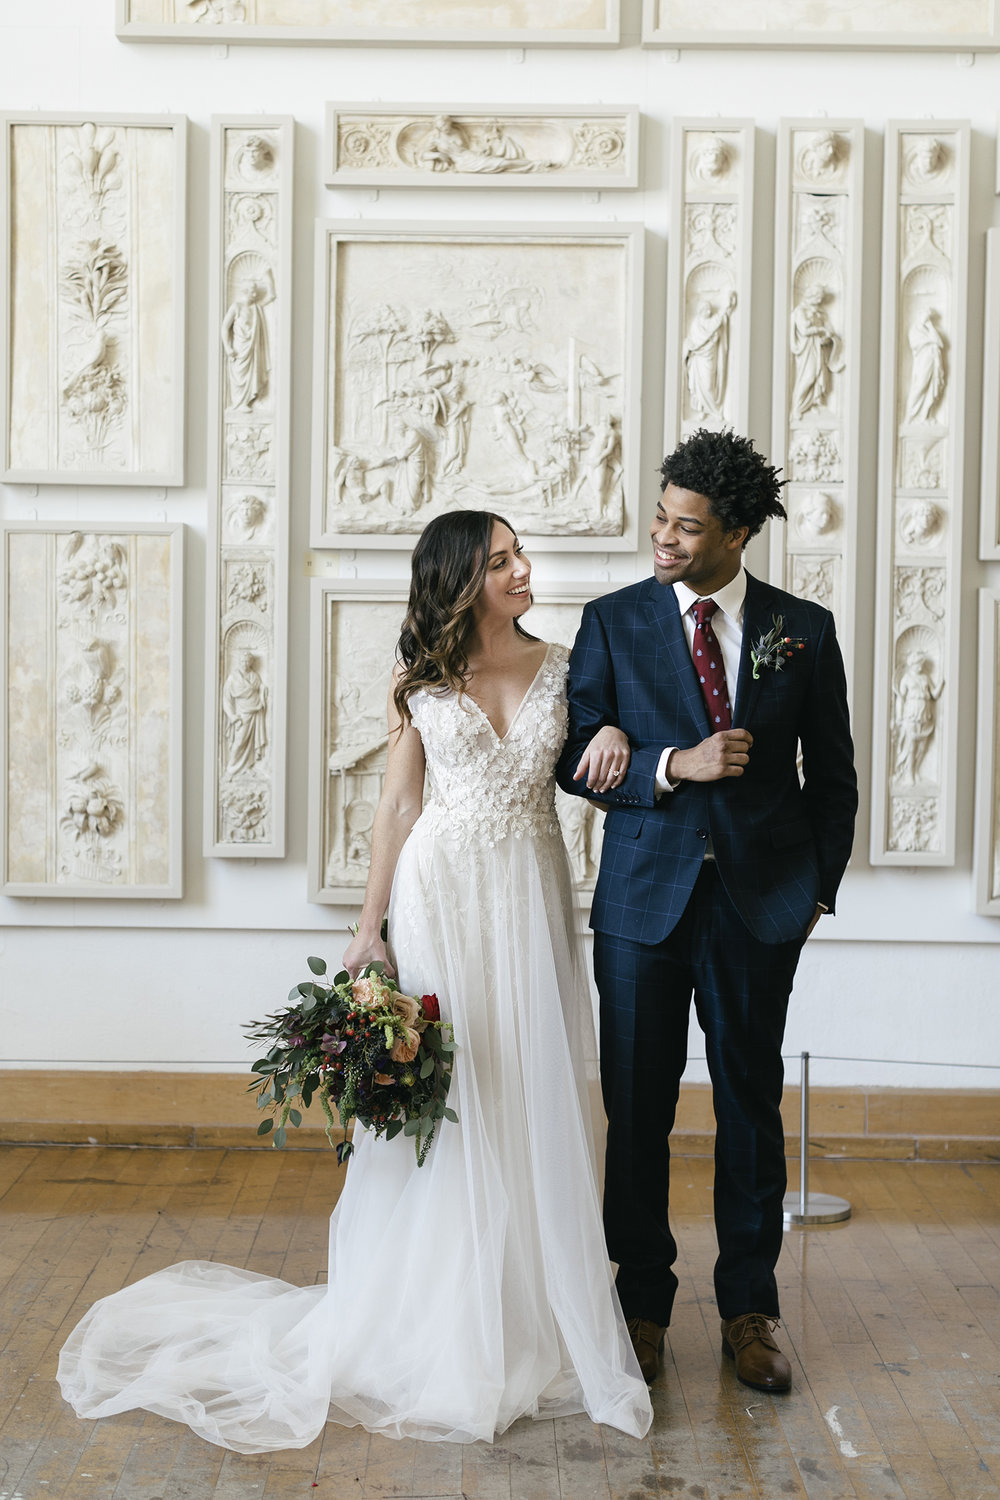 photography-wedding-weddings-natural-candid-pafa-pennsylvania academy-philadephia-philly-philadelphia wedding-mixed race-editorial-modern-fine-art-045.JPG